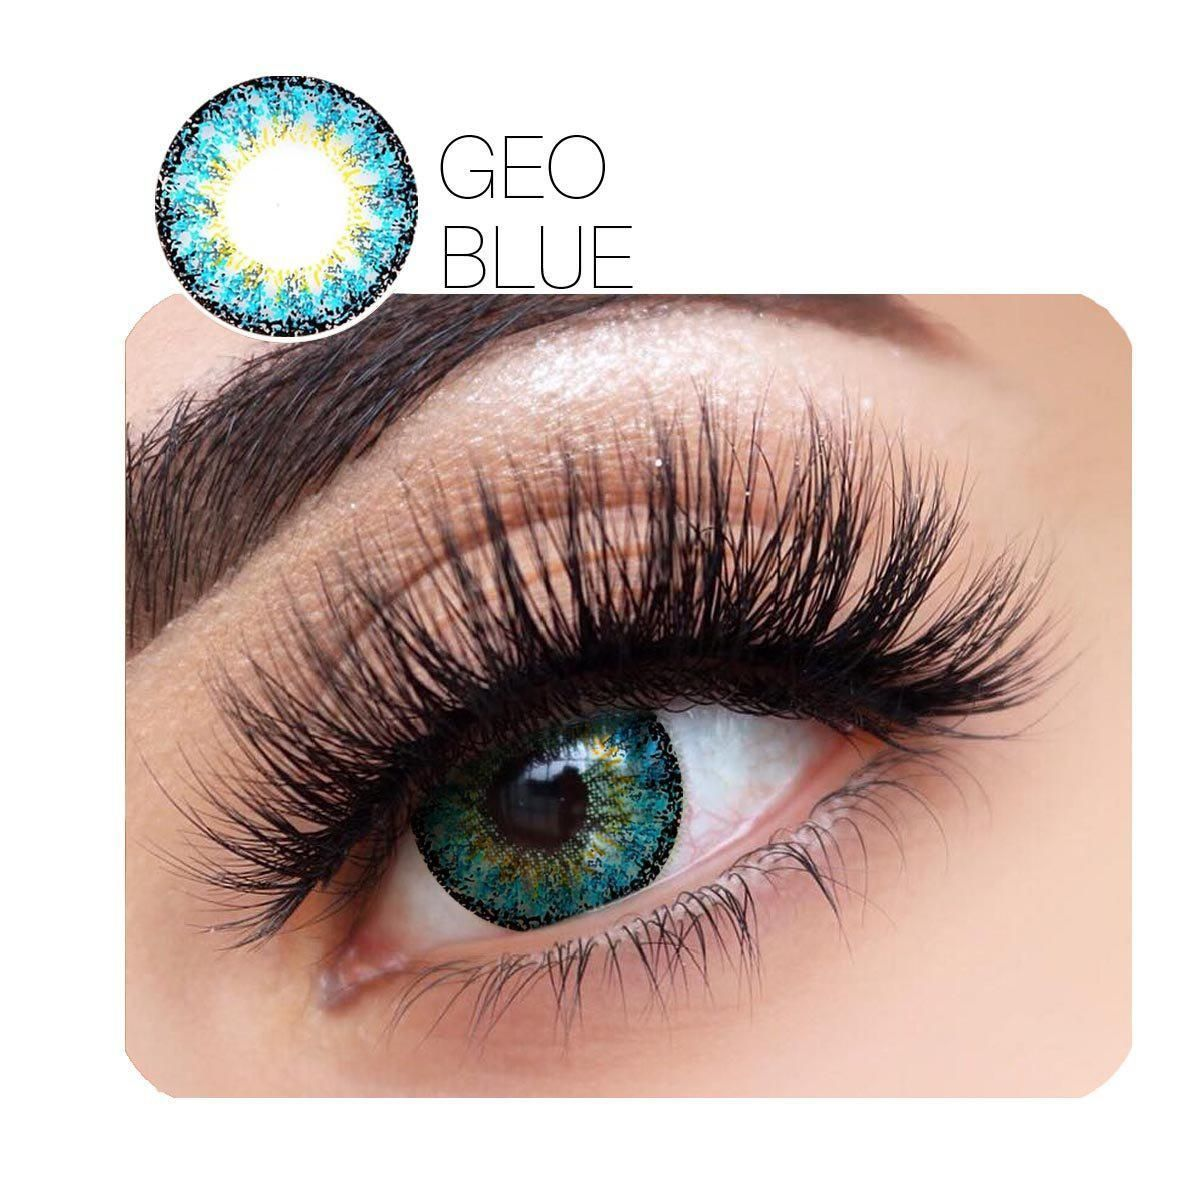 Geo Charm Prescription Blue 12 Month Contact Lenses Stunninglens Contact Lenses Colored Green Contacts Lenses Halloween Contact Lenses